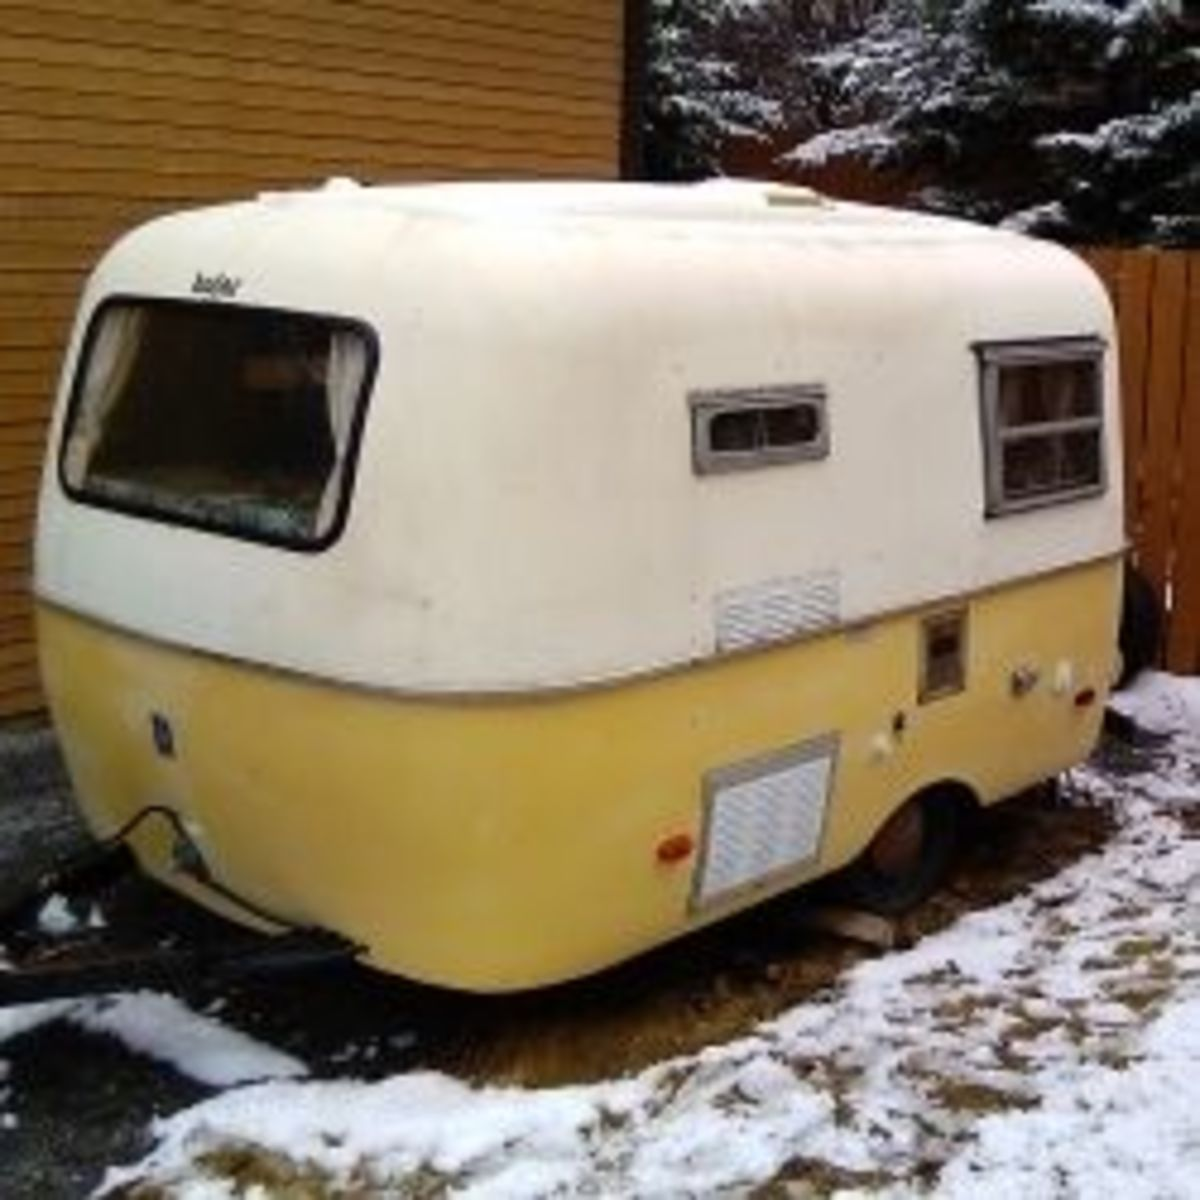 Fiberglass Boler Trailers - The Egg